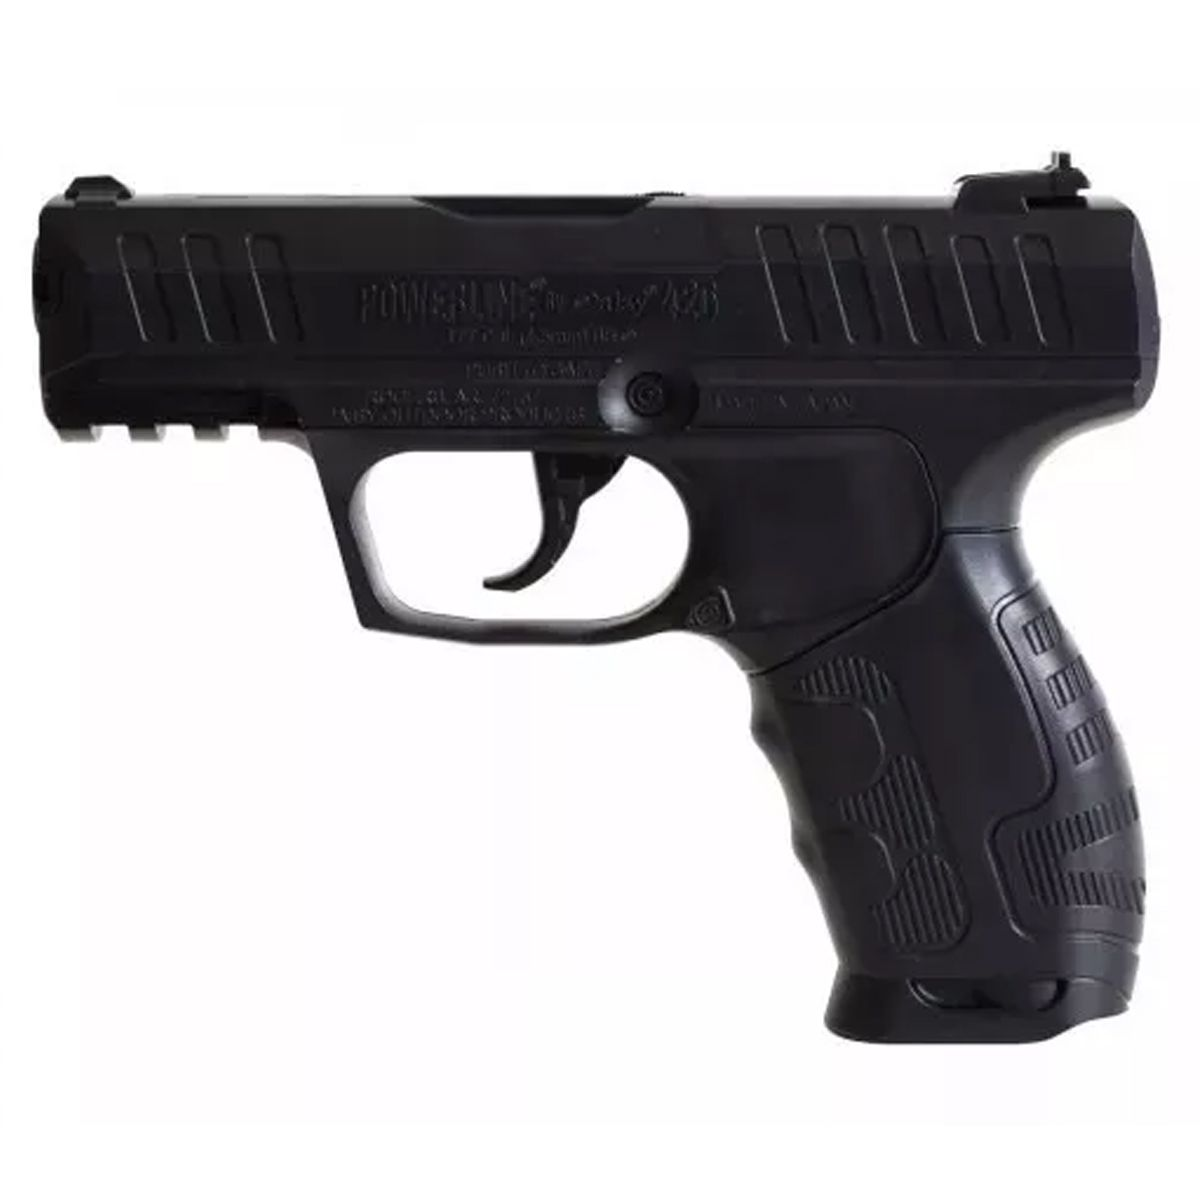 Pistola De Airgun Daisy Power Line 426 Co2 430 Fps 4,5mm